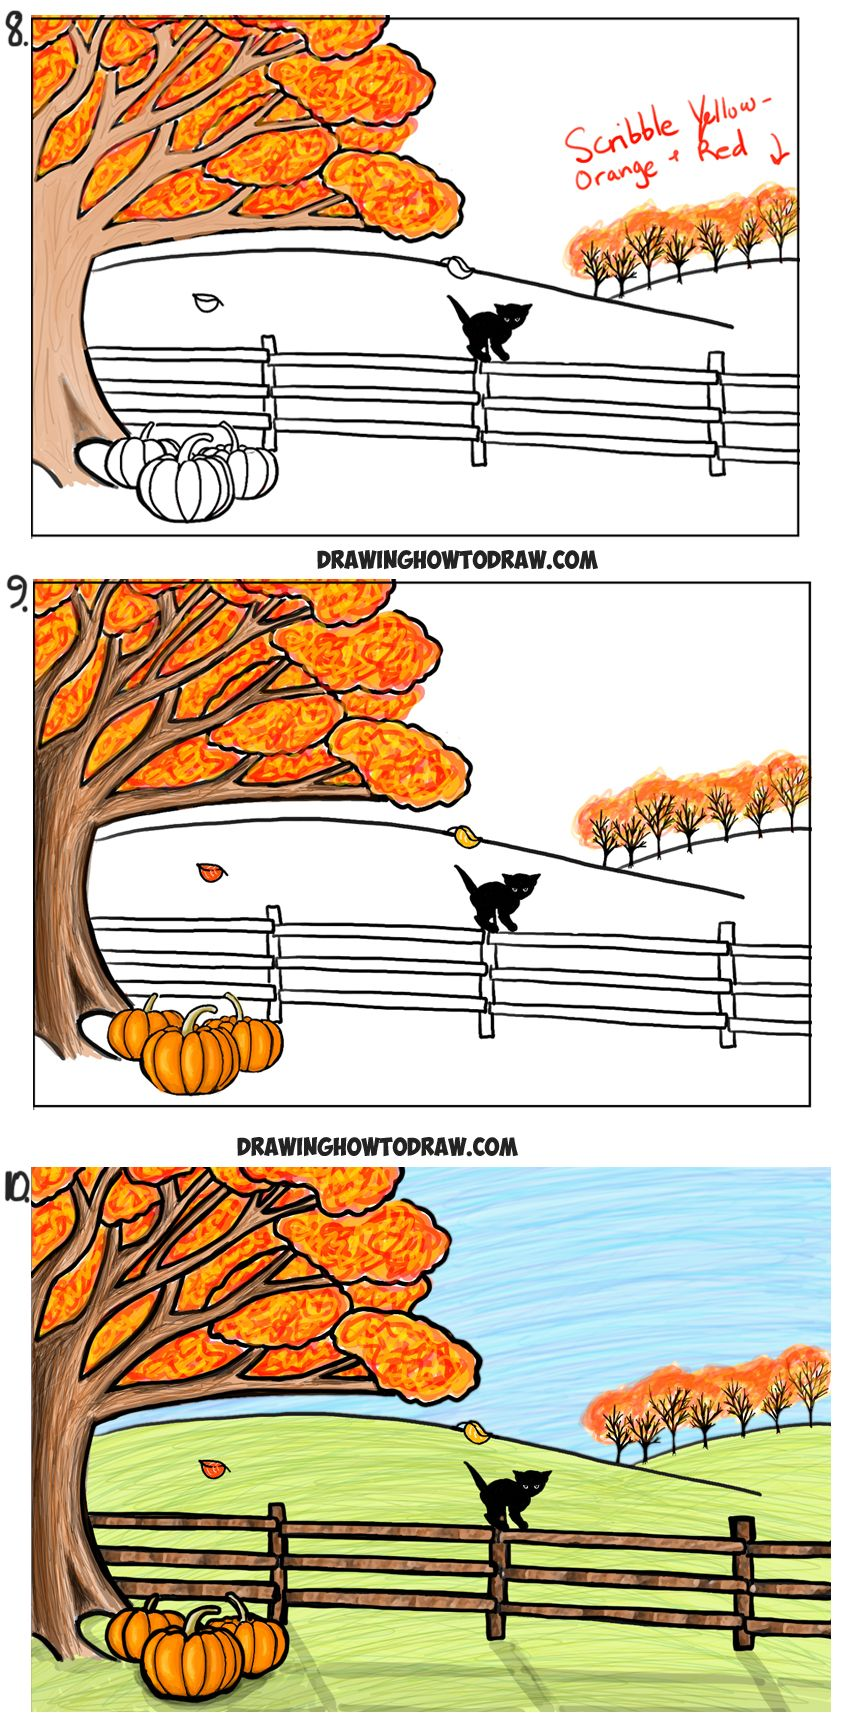 How To Draw An Autumn Fall Scene Step By Step Drawing Tutorial For Kids How To Draw Step By Step Drawing Tutorials Drawing Tutorials For Kids Drawing Tutorial Fall Leaves